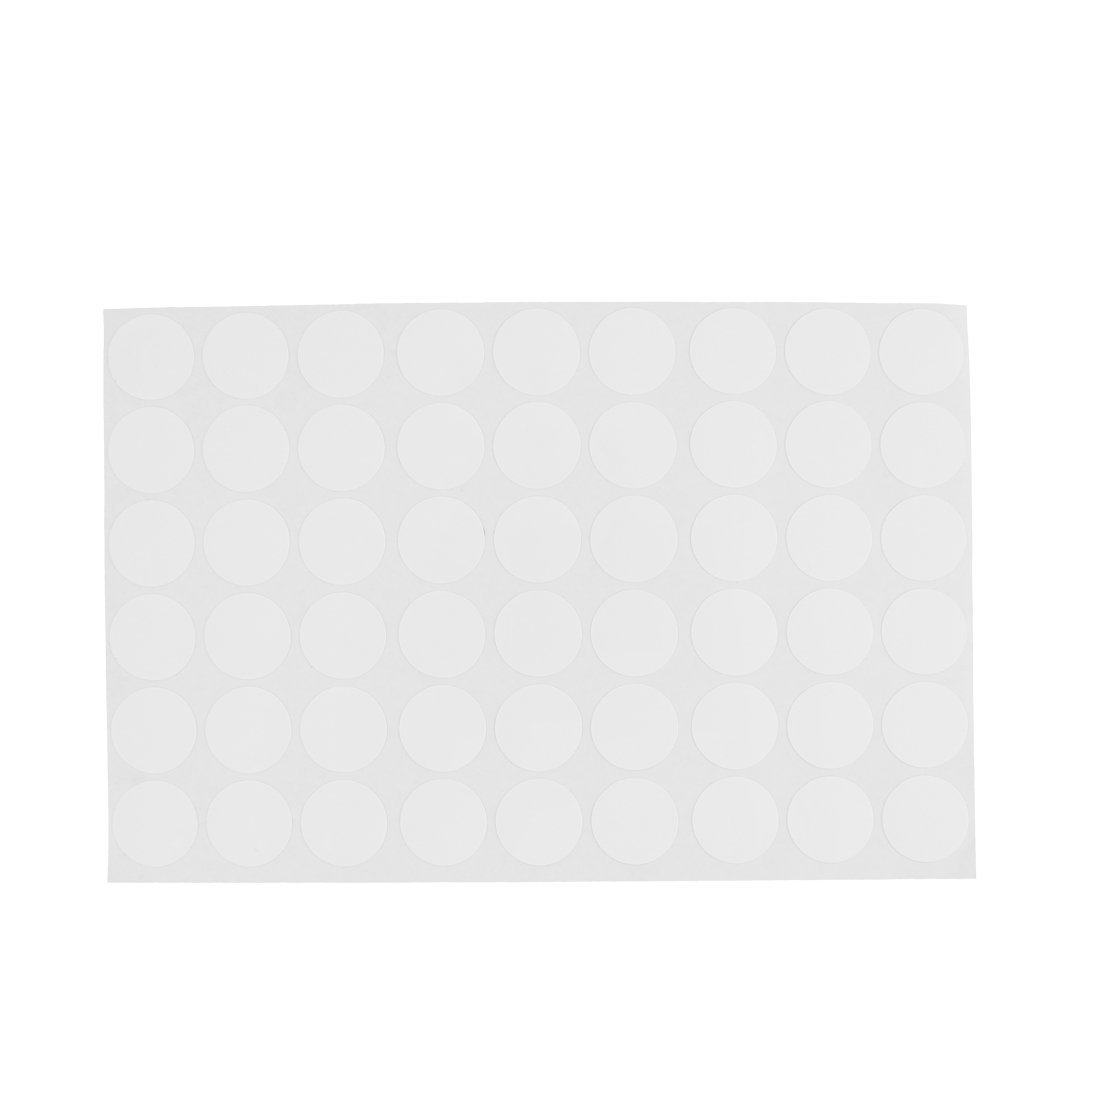 Wardrobe Cupboard Self-adhesive Screw Covers Caps Stickers 54 In 1 White